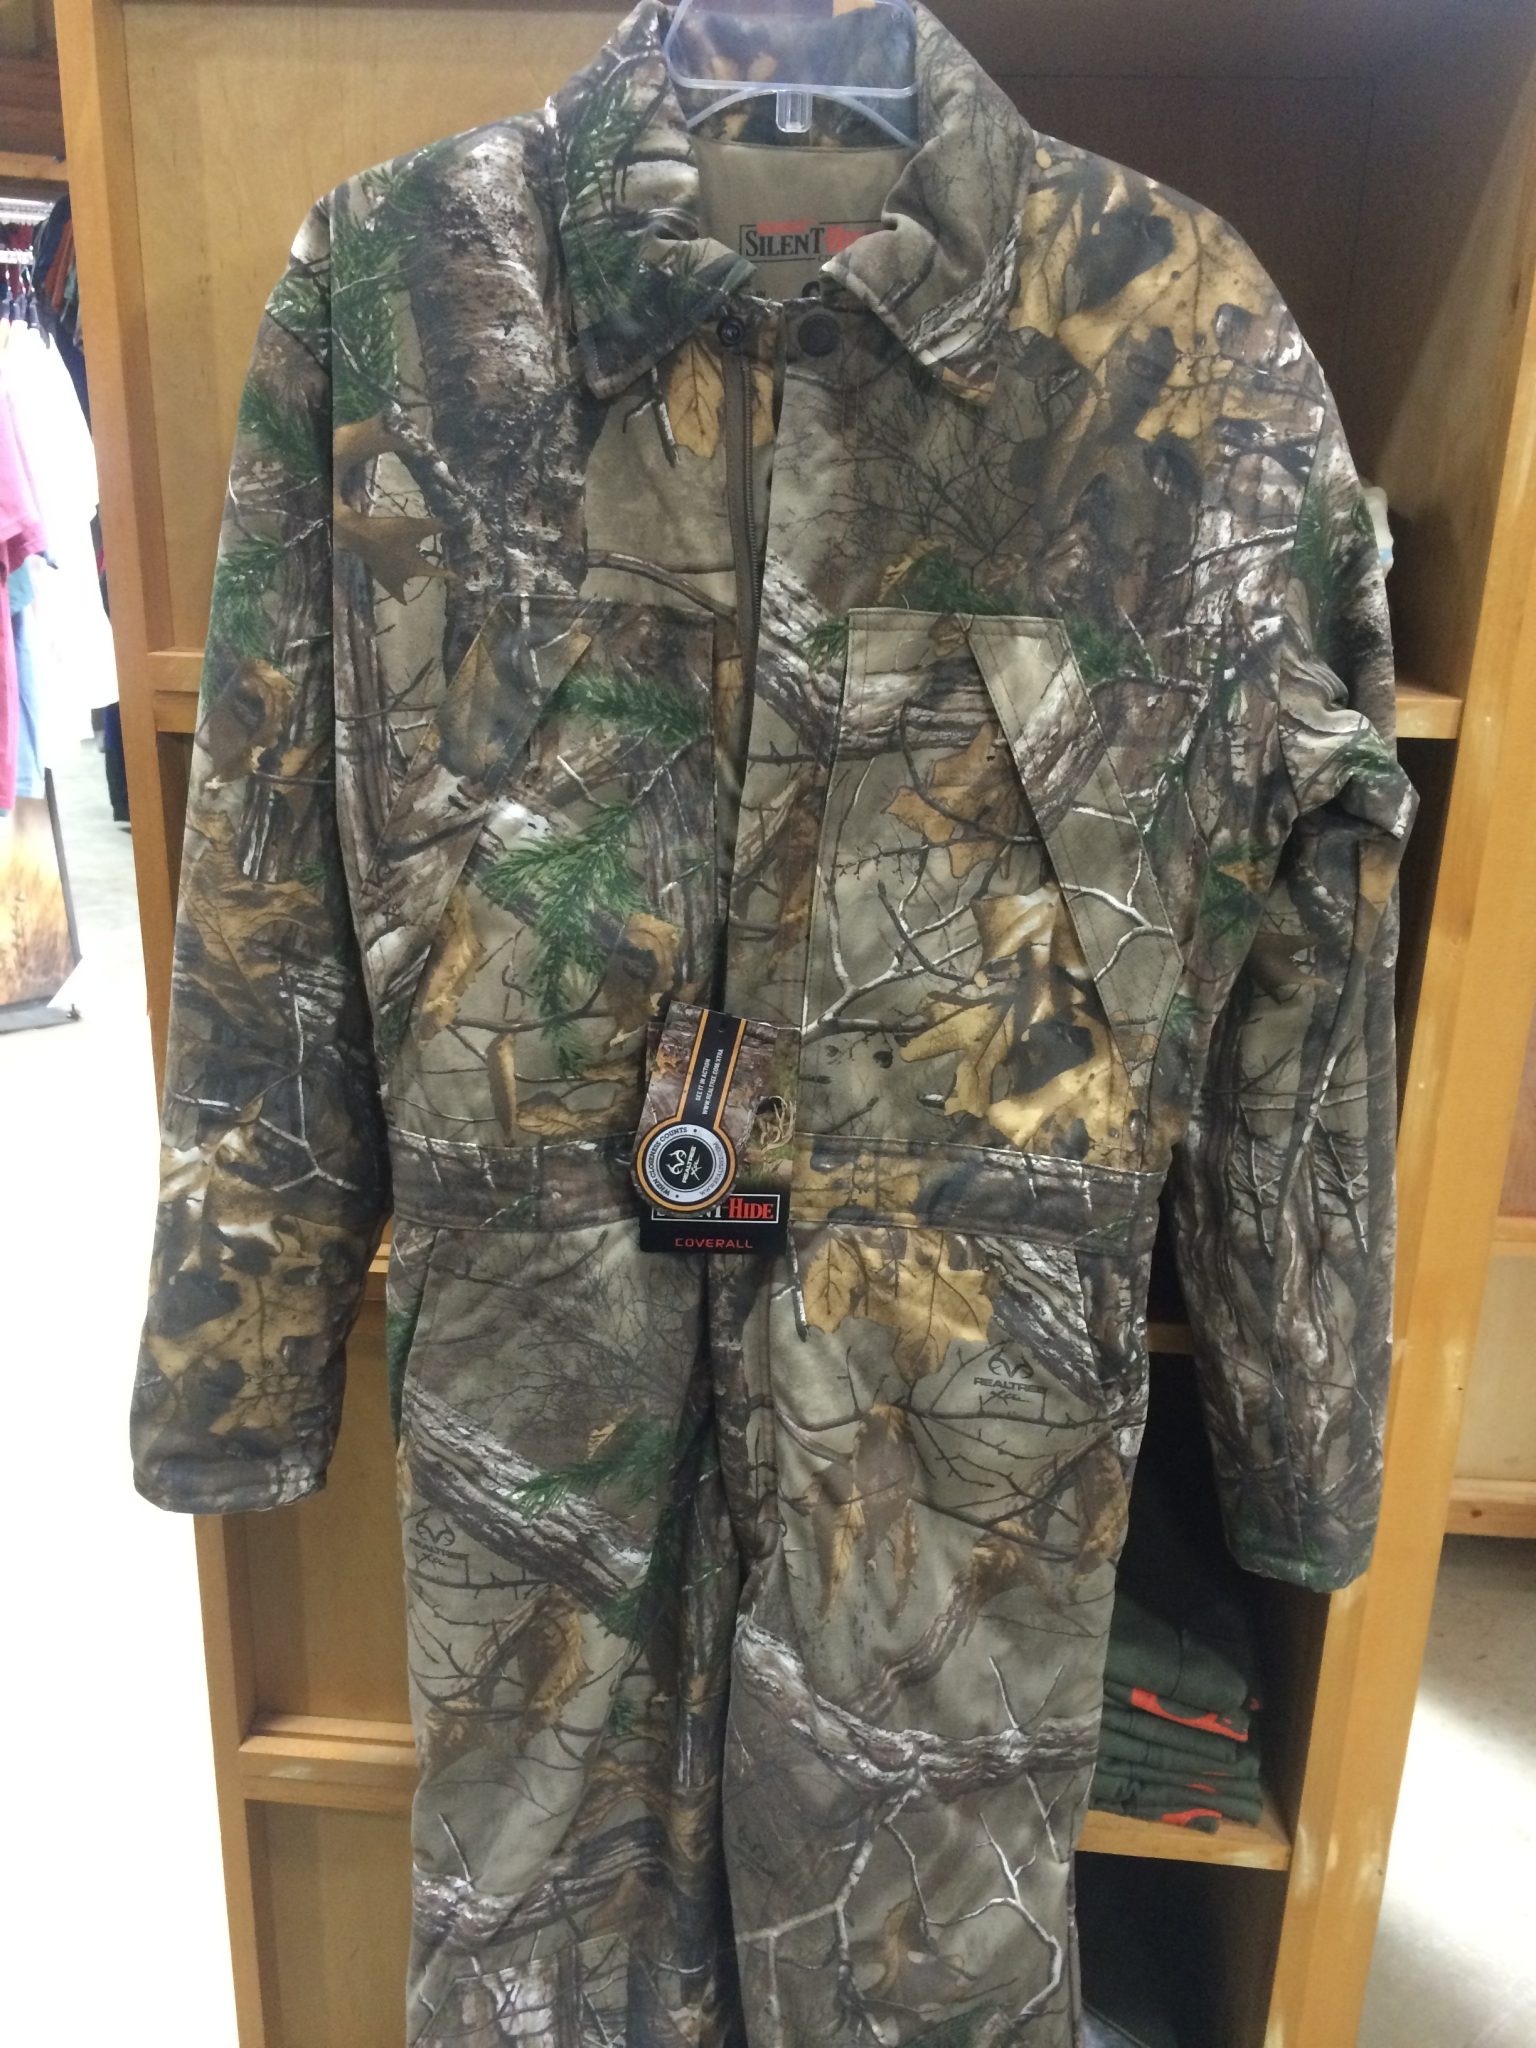 readhed coveralls realtree xtra